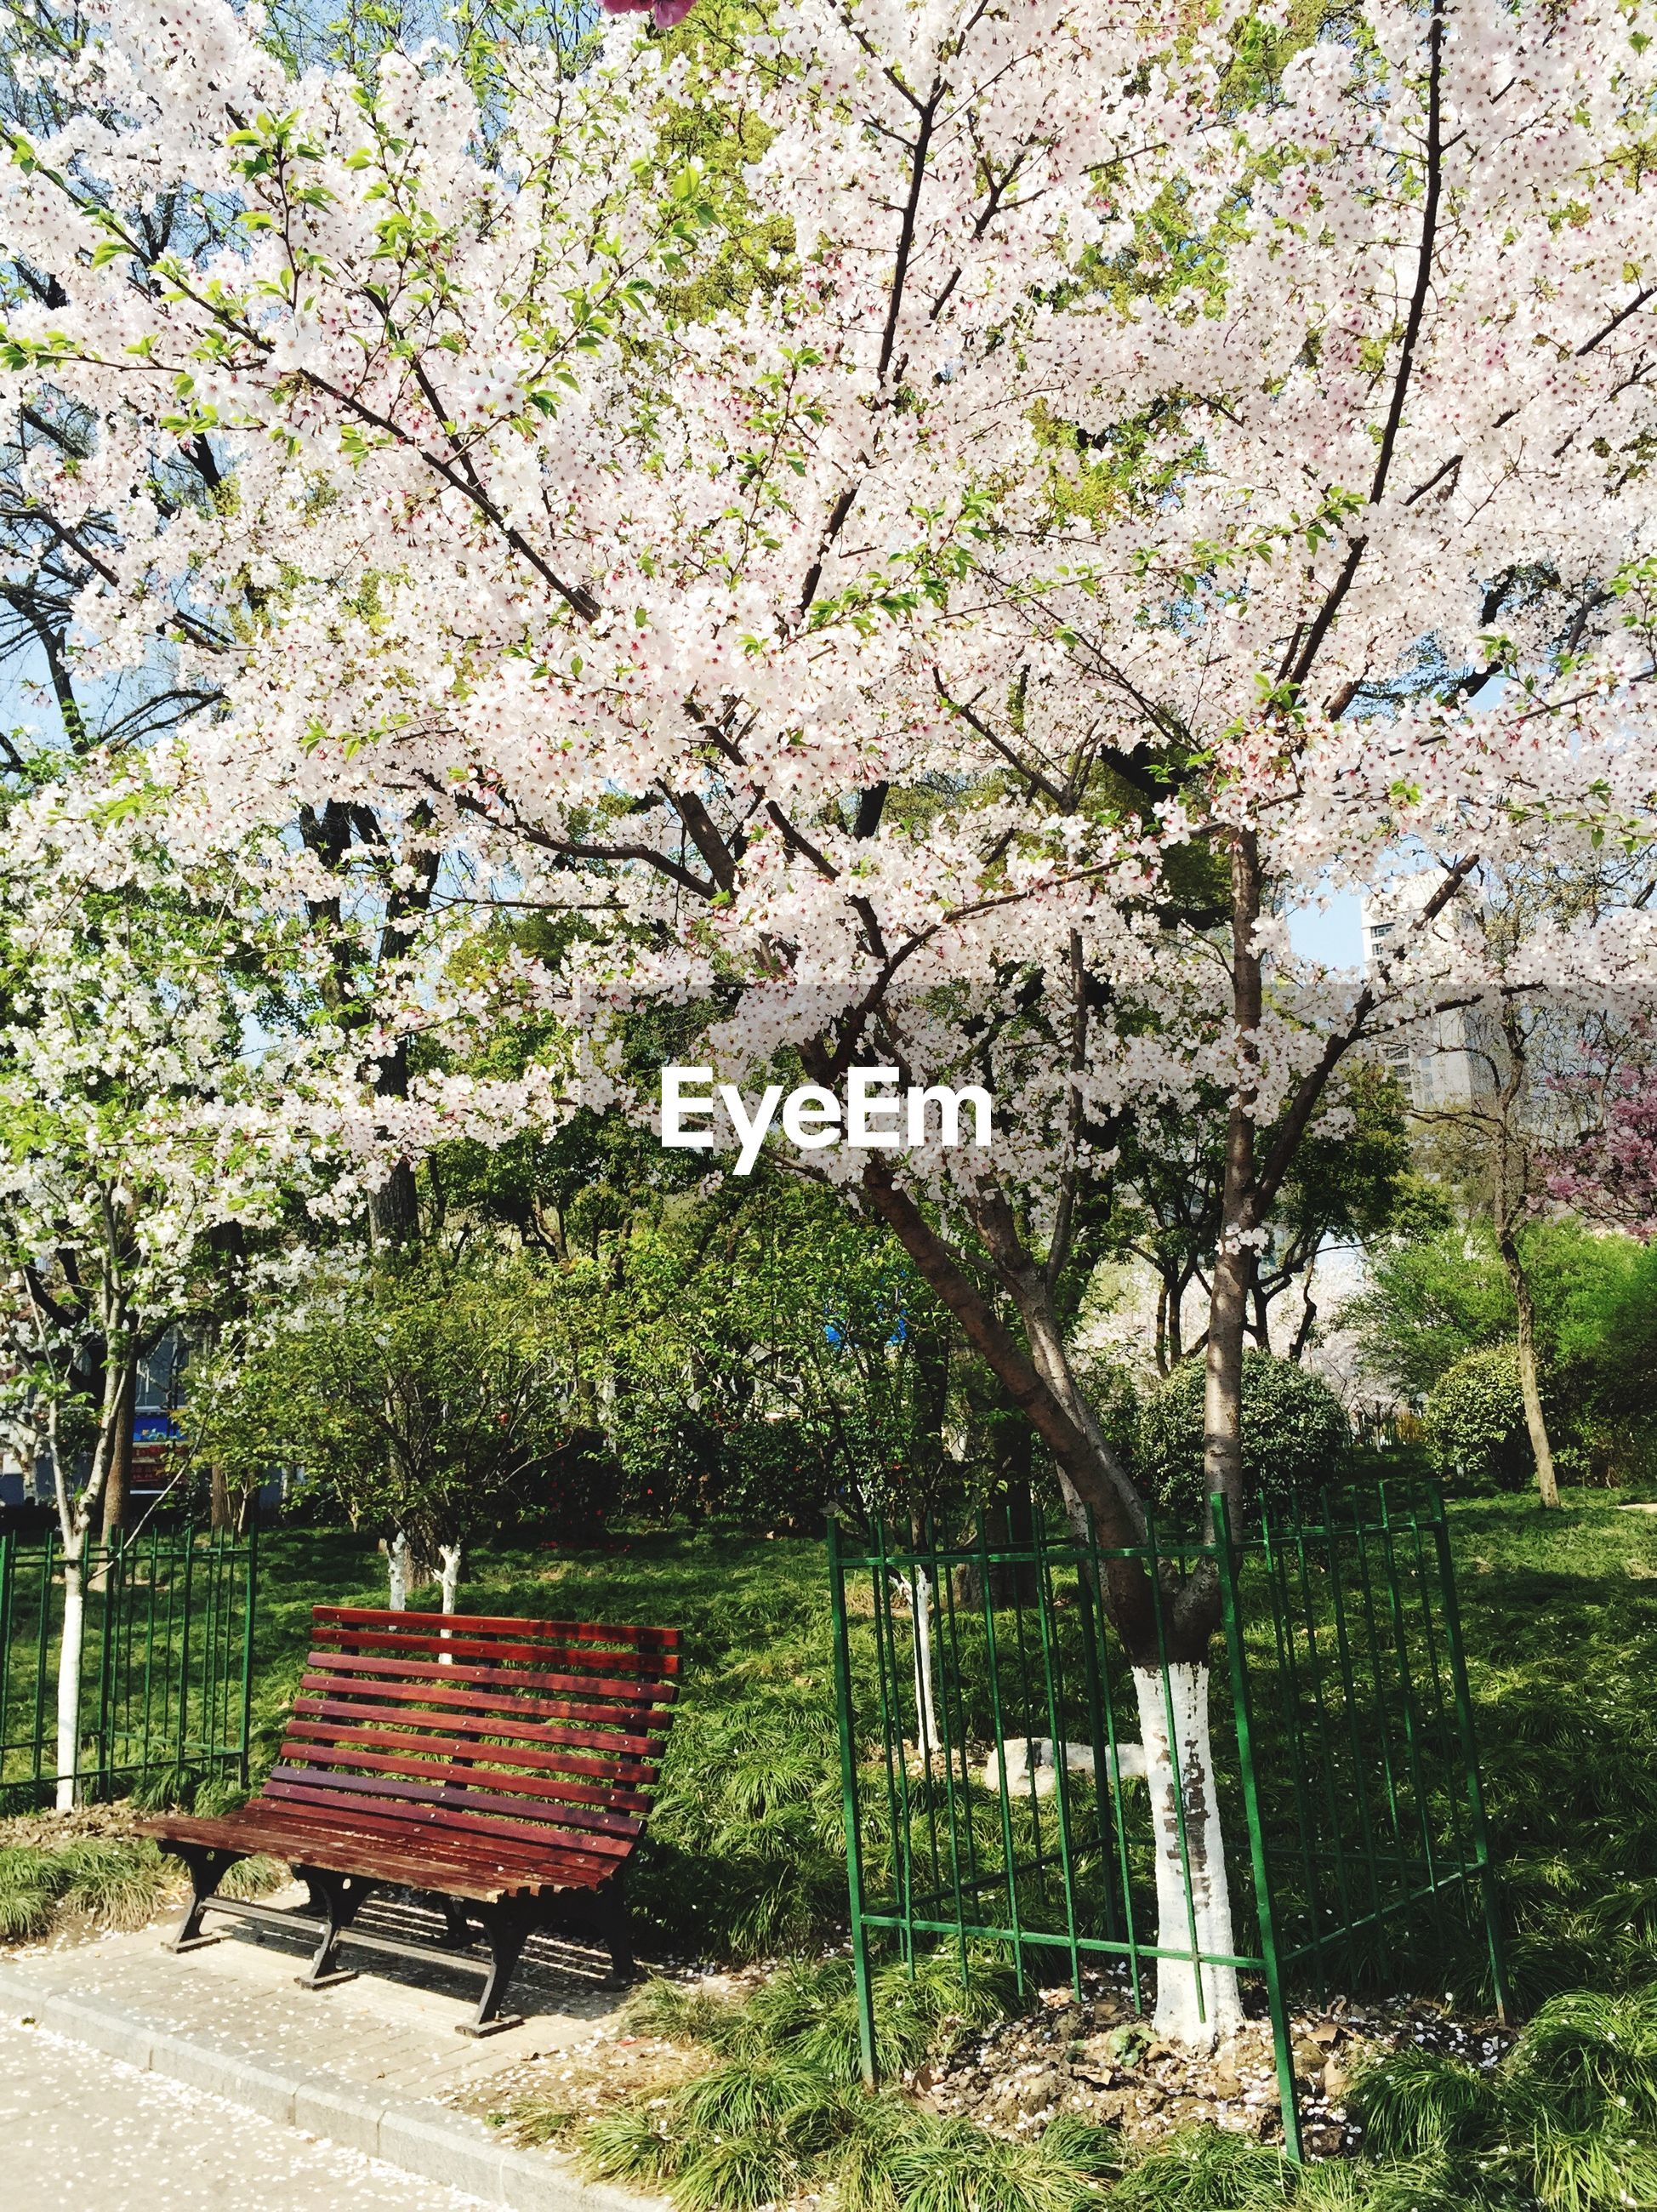 tree, growth, branch, flower, park - man made space, nature, bench, beauty in nature, tranquility, blossom, tranquil scene, green color, park, tree trunk, freshness, built structure, day, plant, grass, park bench